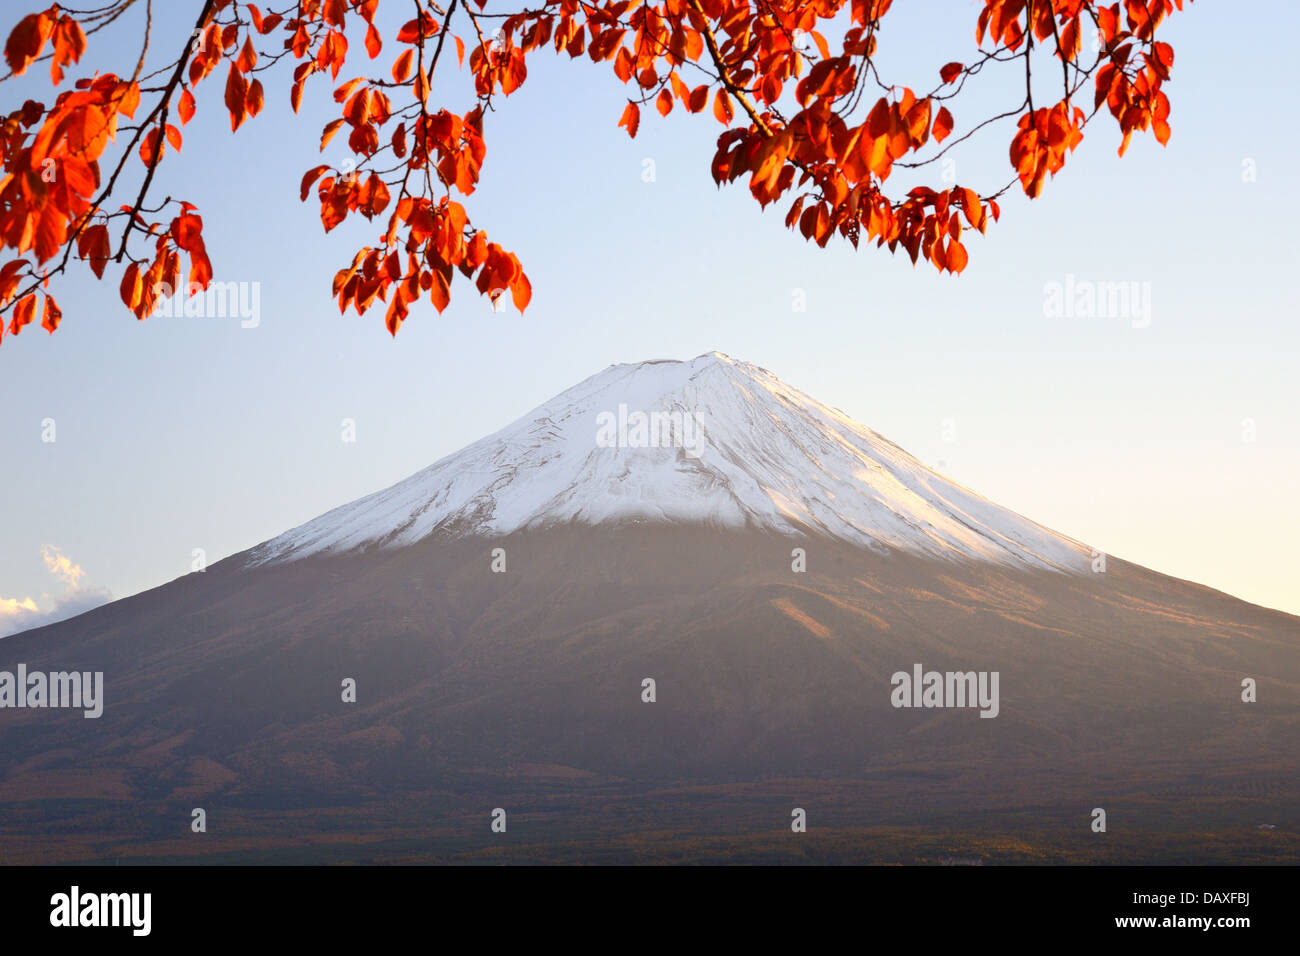 Mt. Fuji mit Herbstfarben in Japan. Stockbild